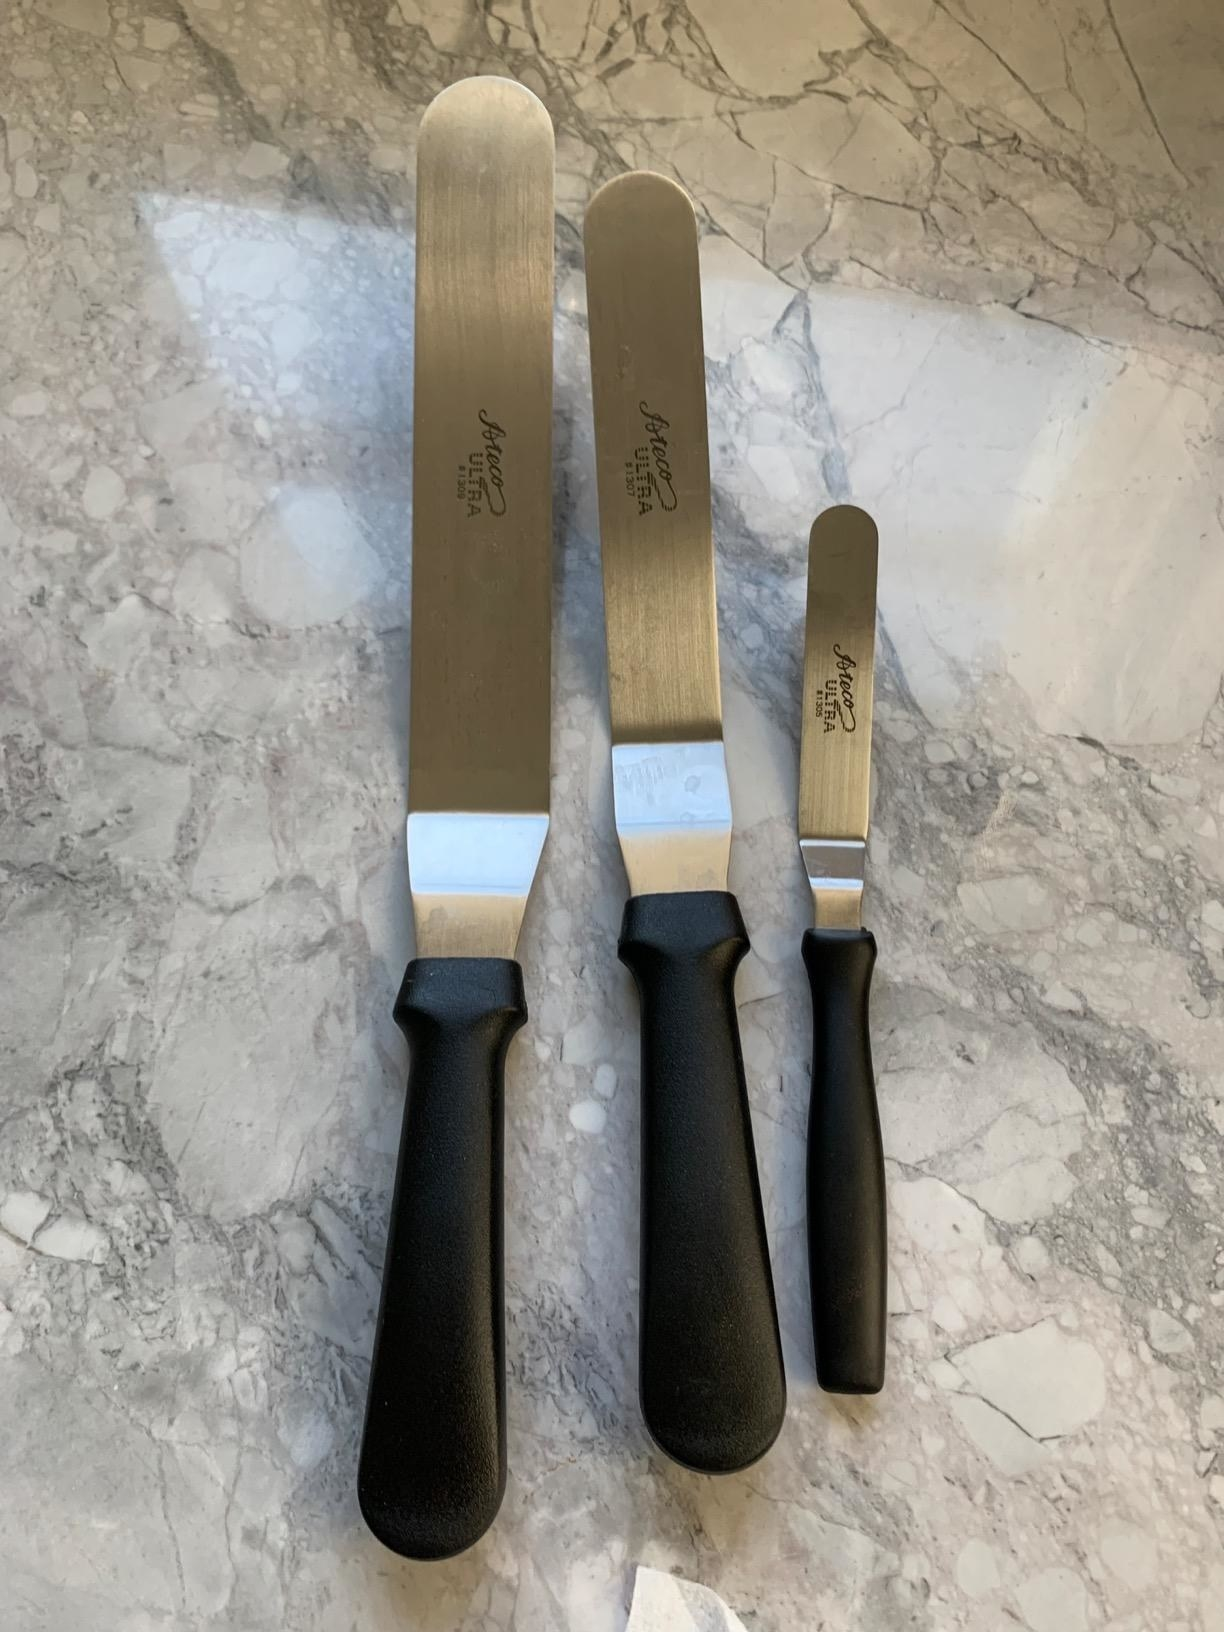 reviewer image of the three ateco offset spatulas